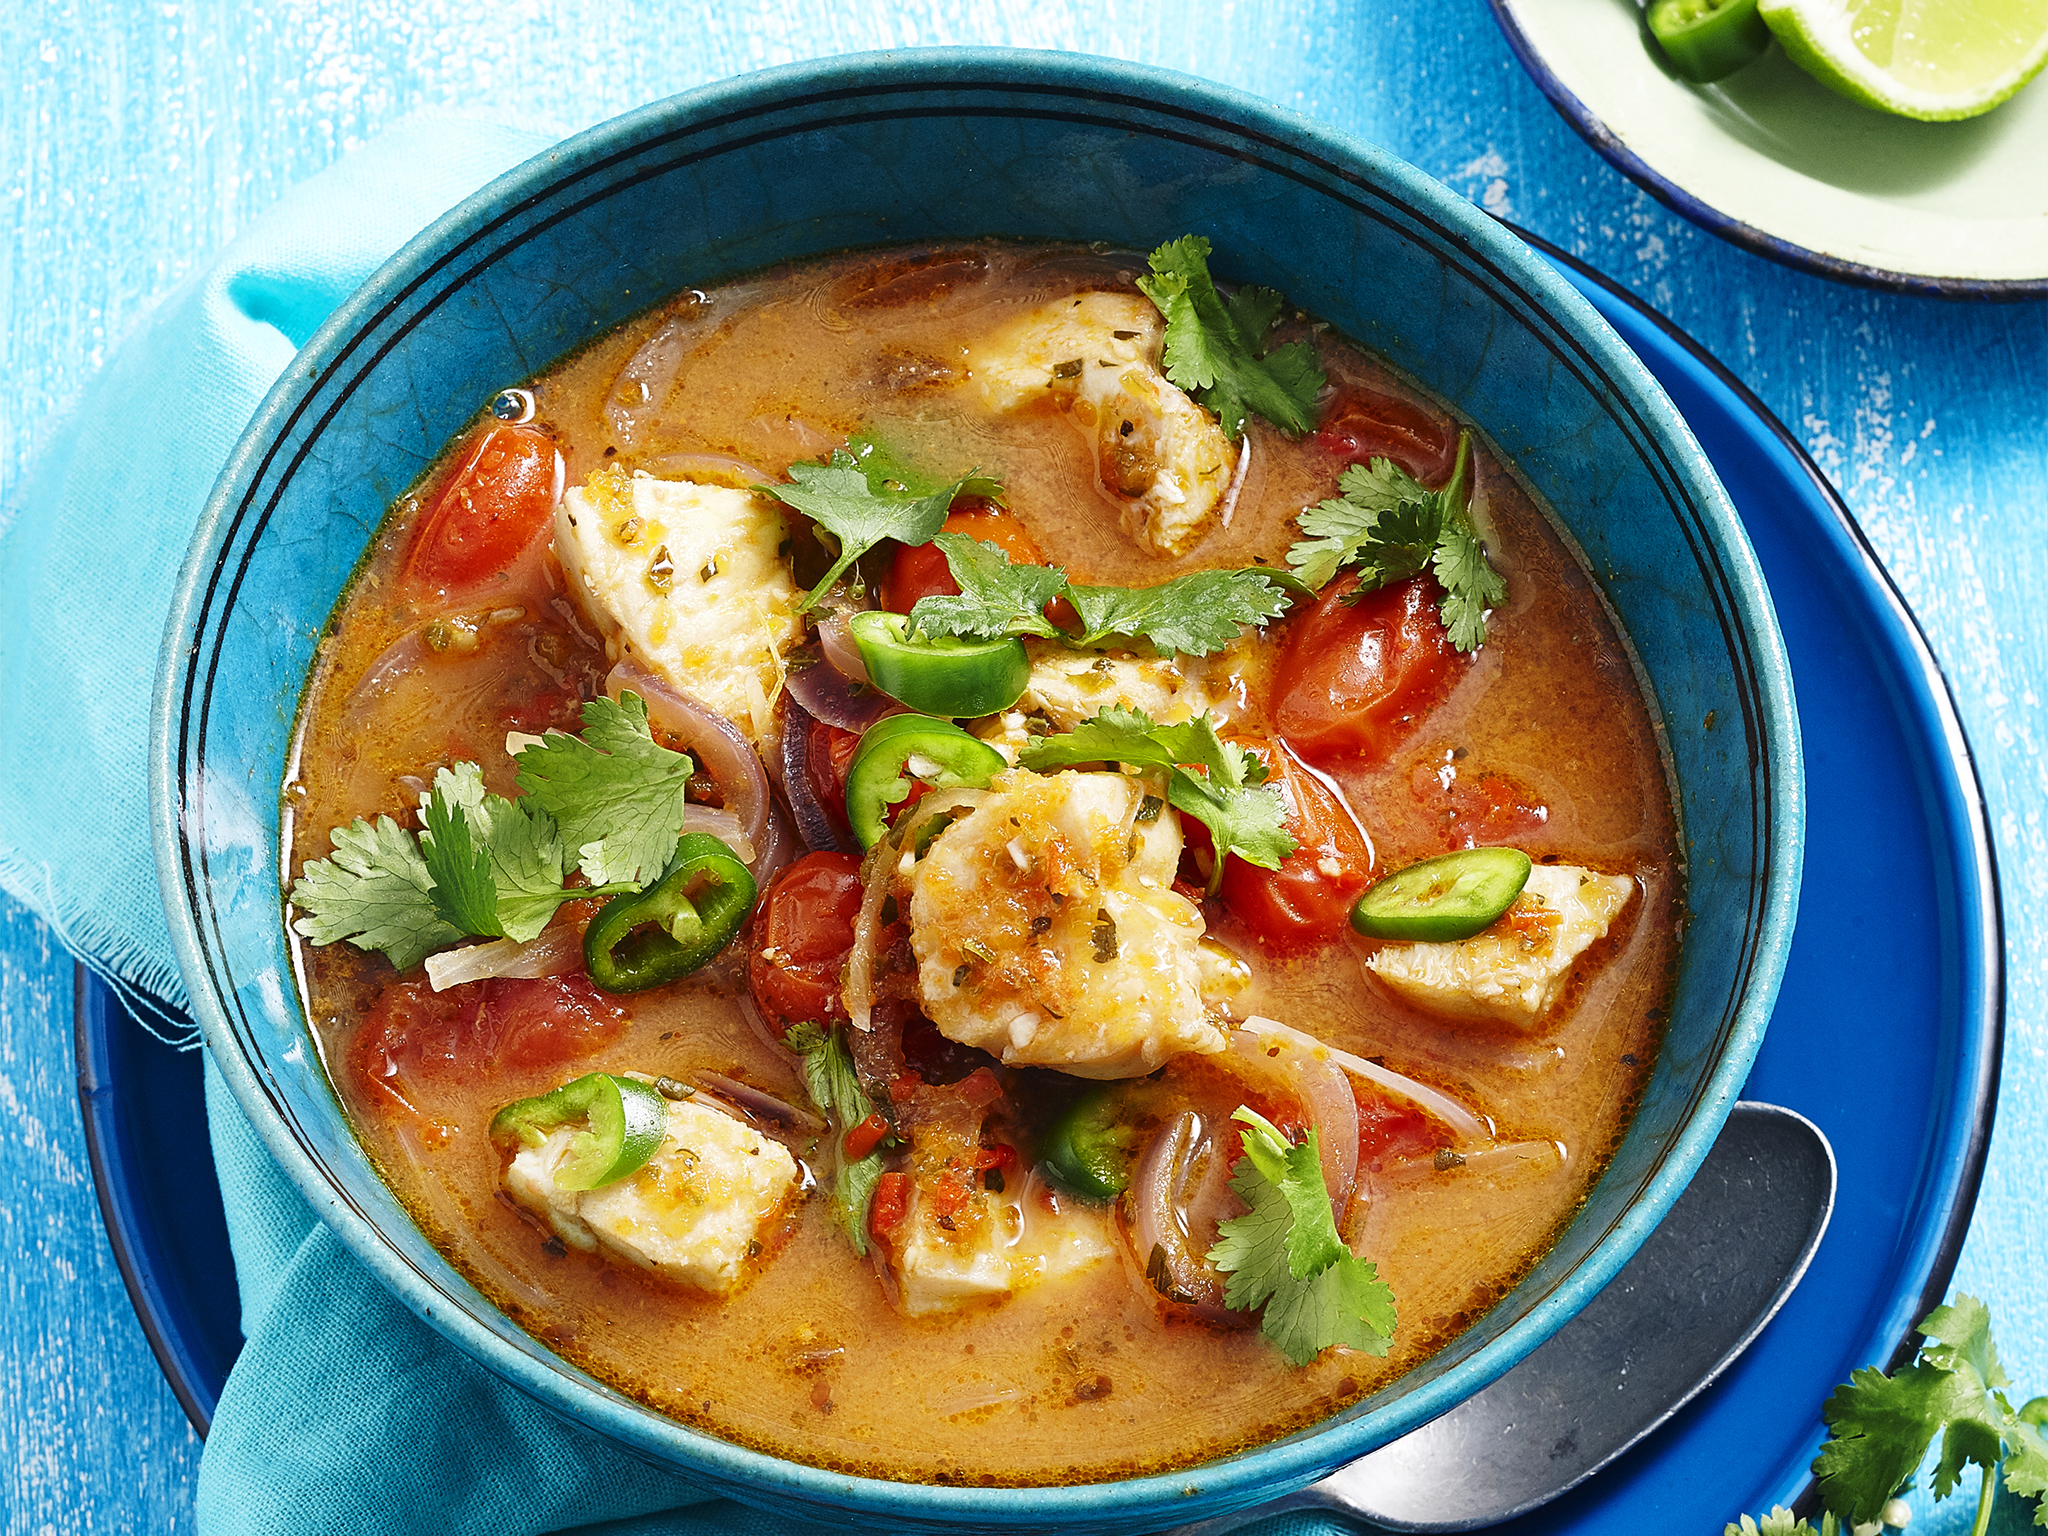 Spicy mexican food images galleries for Mexican fish soup recipe